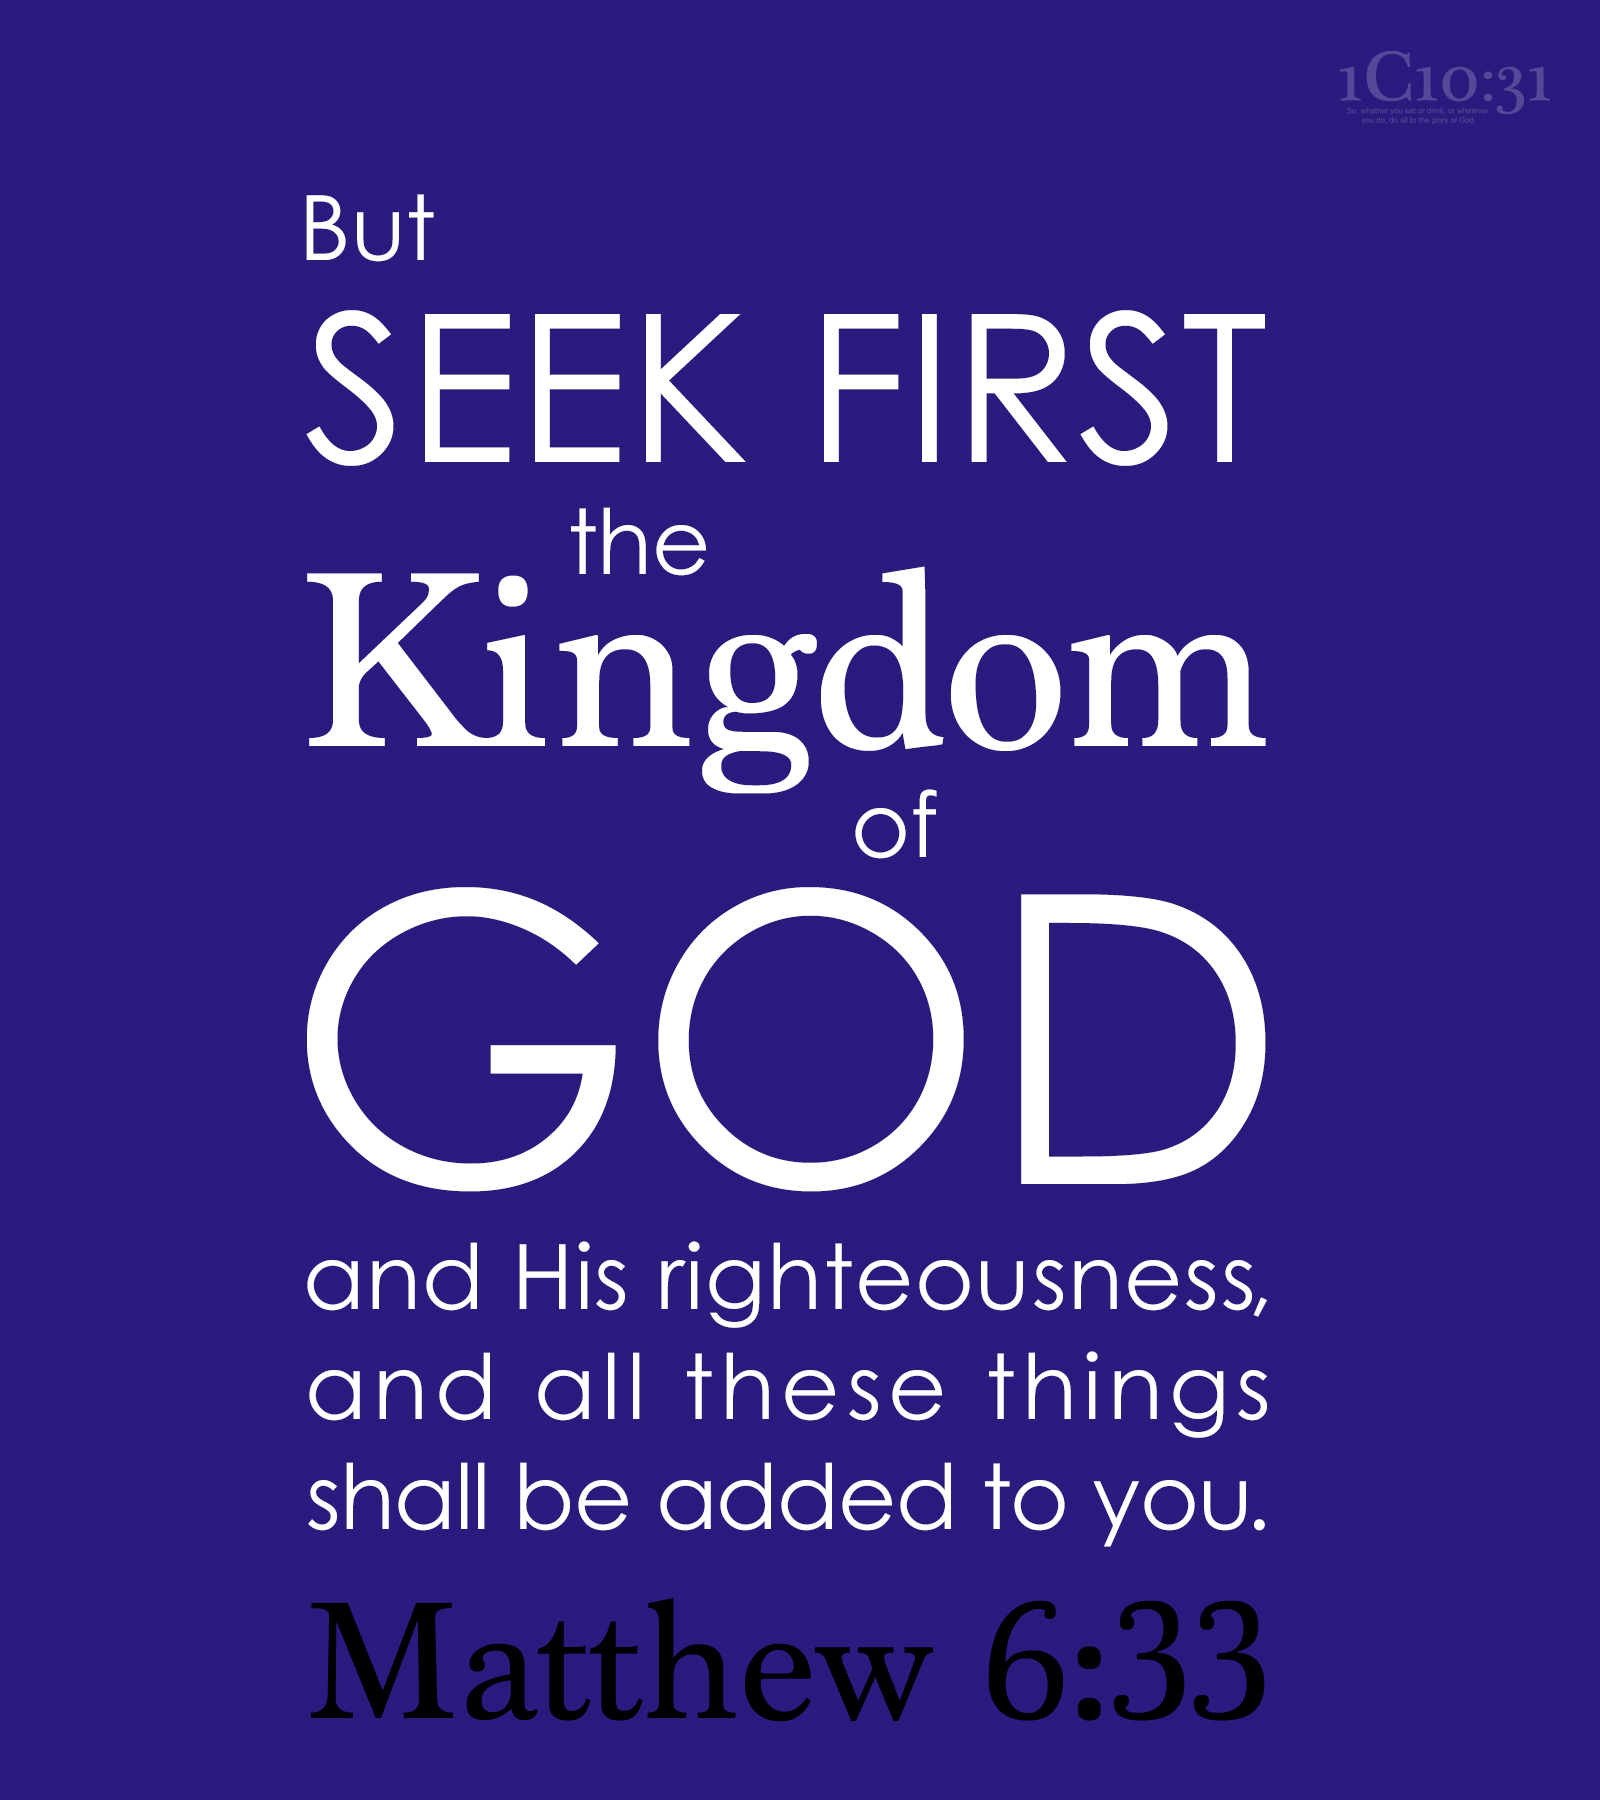 Matthew 6:33 But seek first the kingdom of God and His righteousness, and all these things shall be added to you.